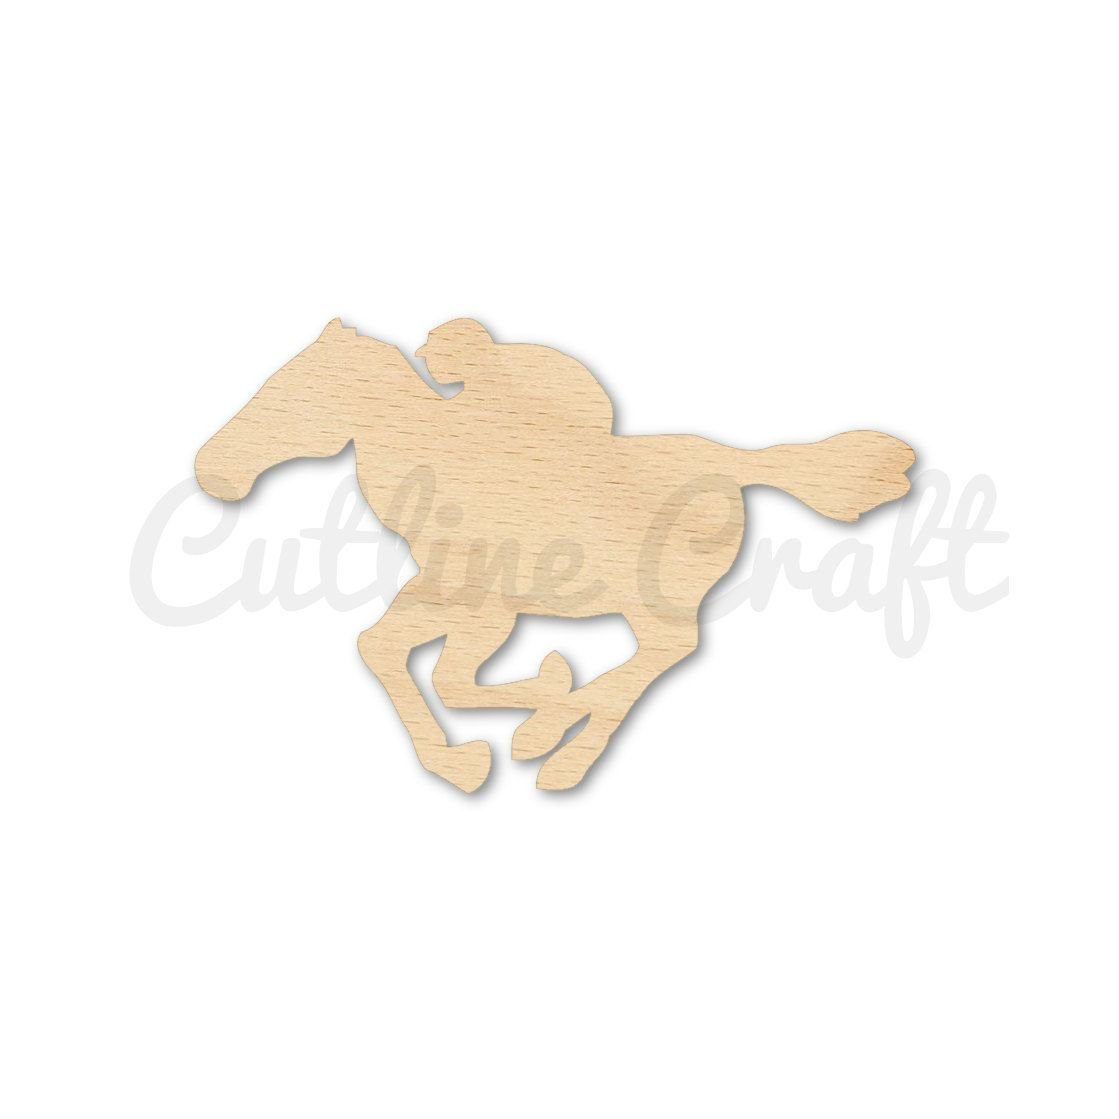 Race Horse 2 Style 2262 Cutout Shapes Crafts Gift Tags Ornaments Laser Cut Birch Wood Various Sizes